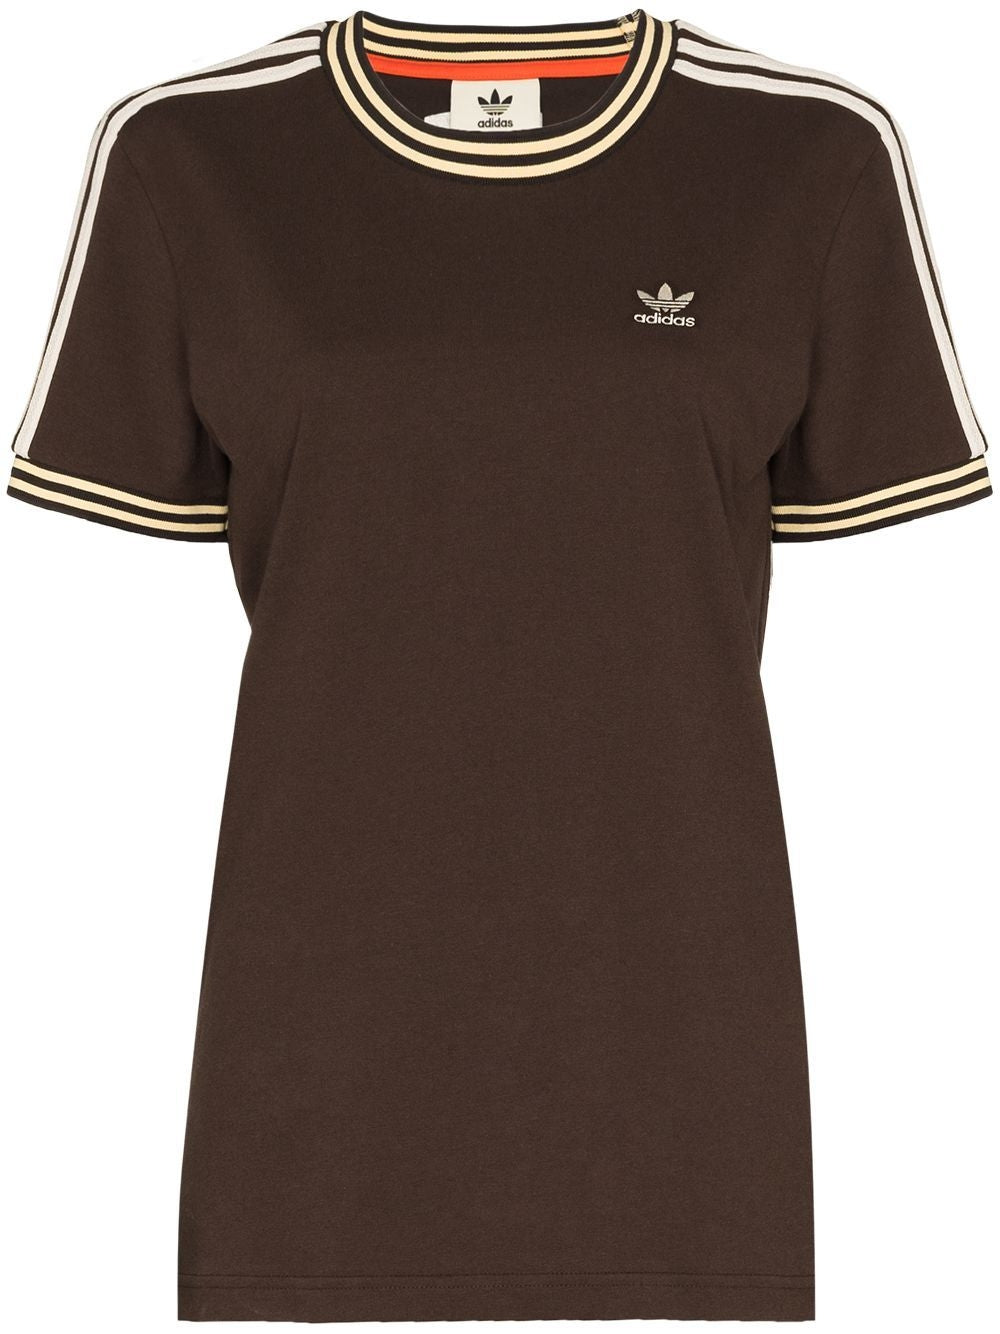 Brown Wales Bonner Graphic T-Shirt